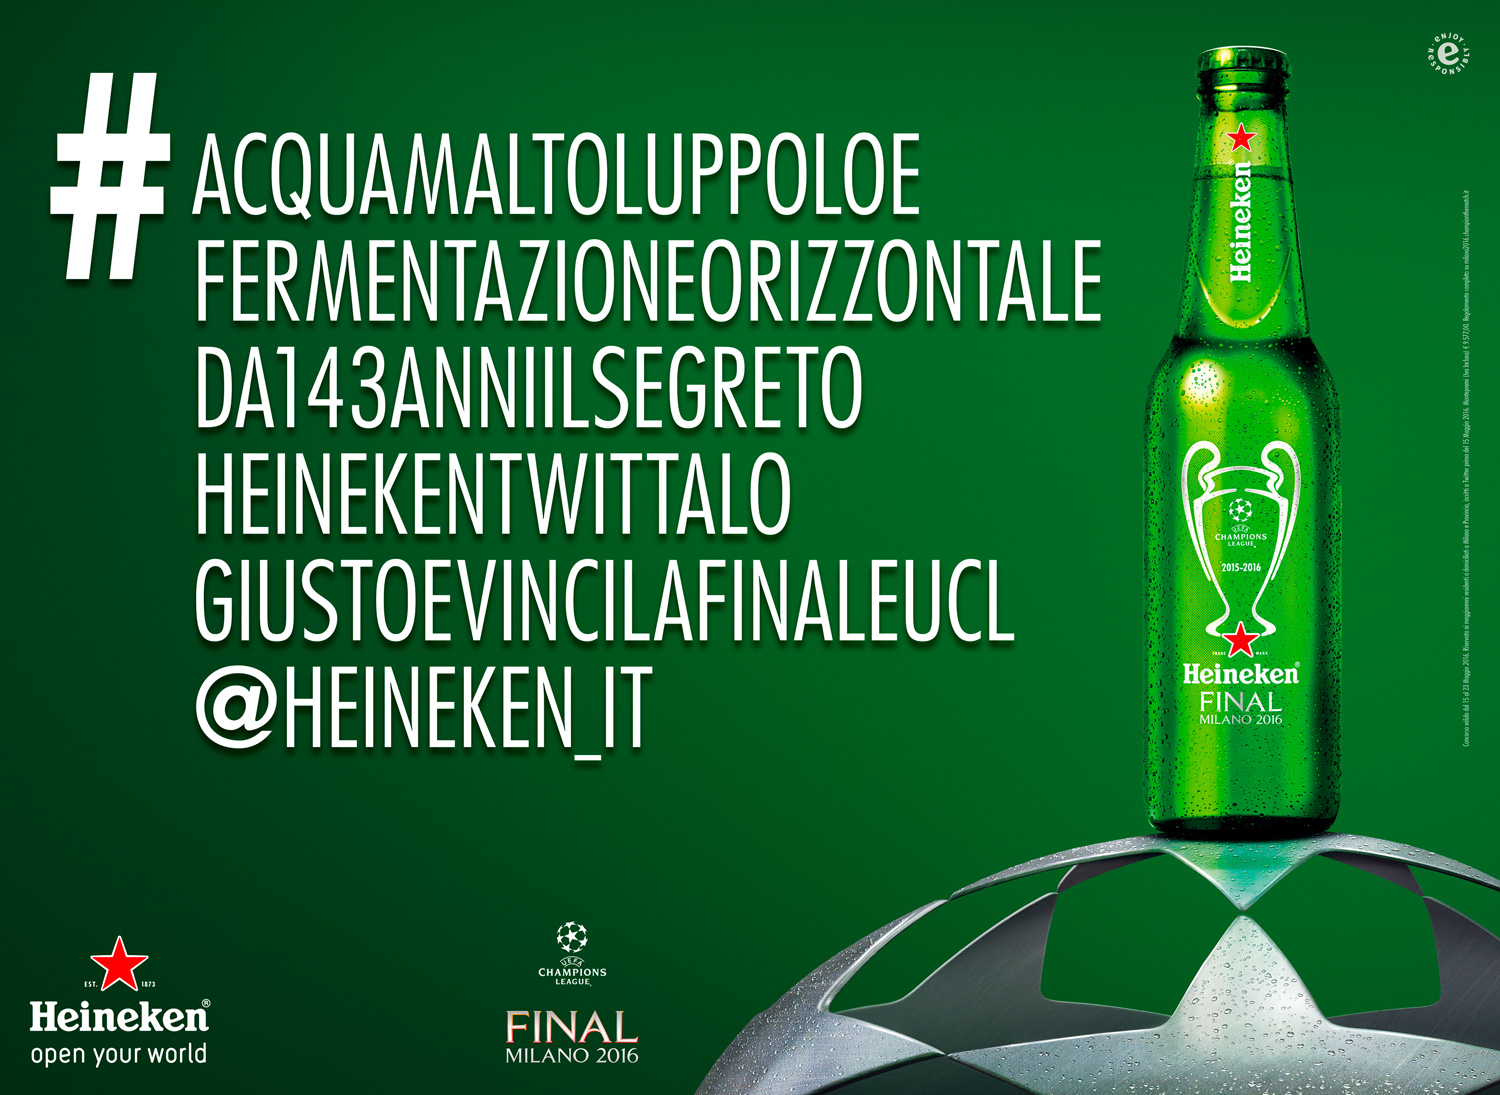 HEINEKEN_The-Final-Hashtag_01